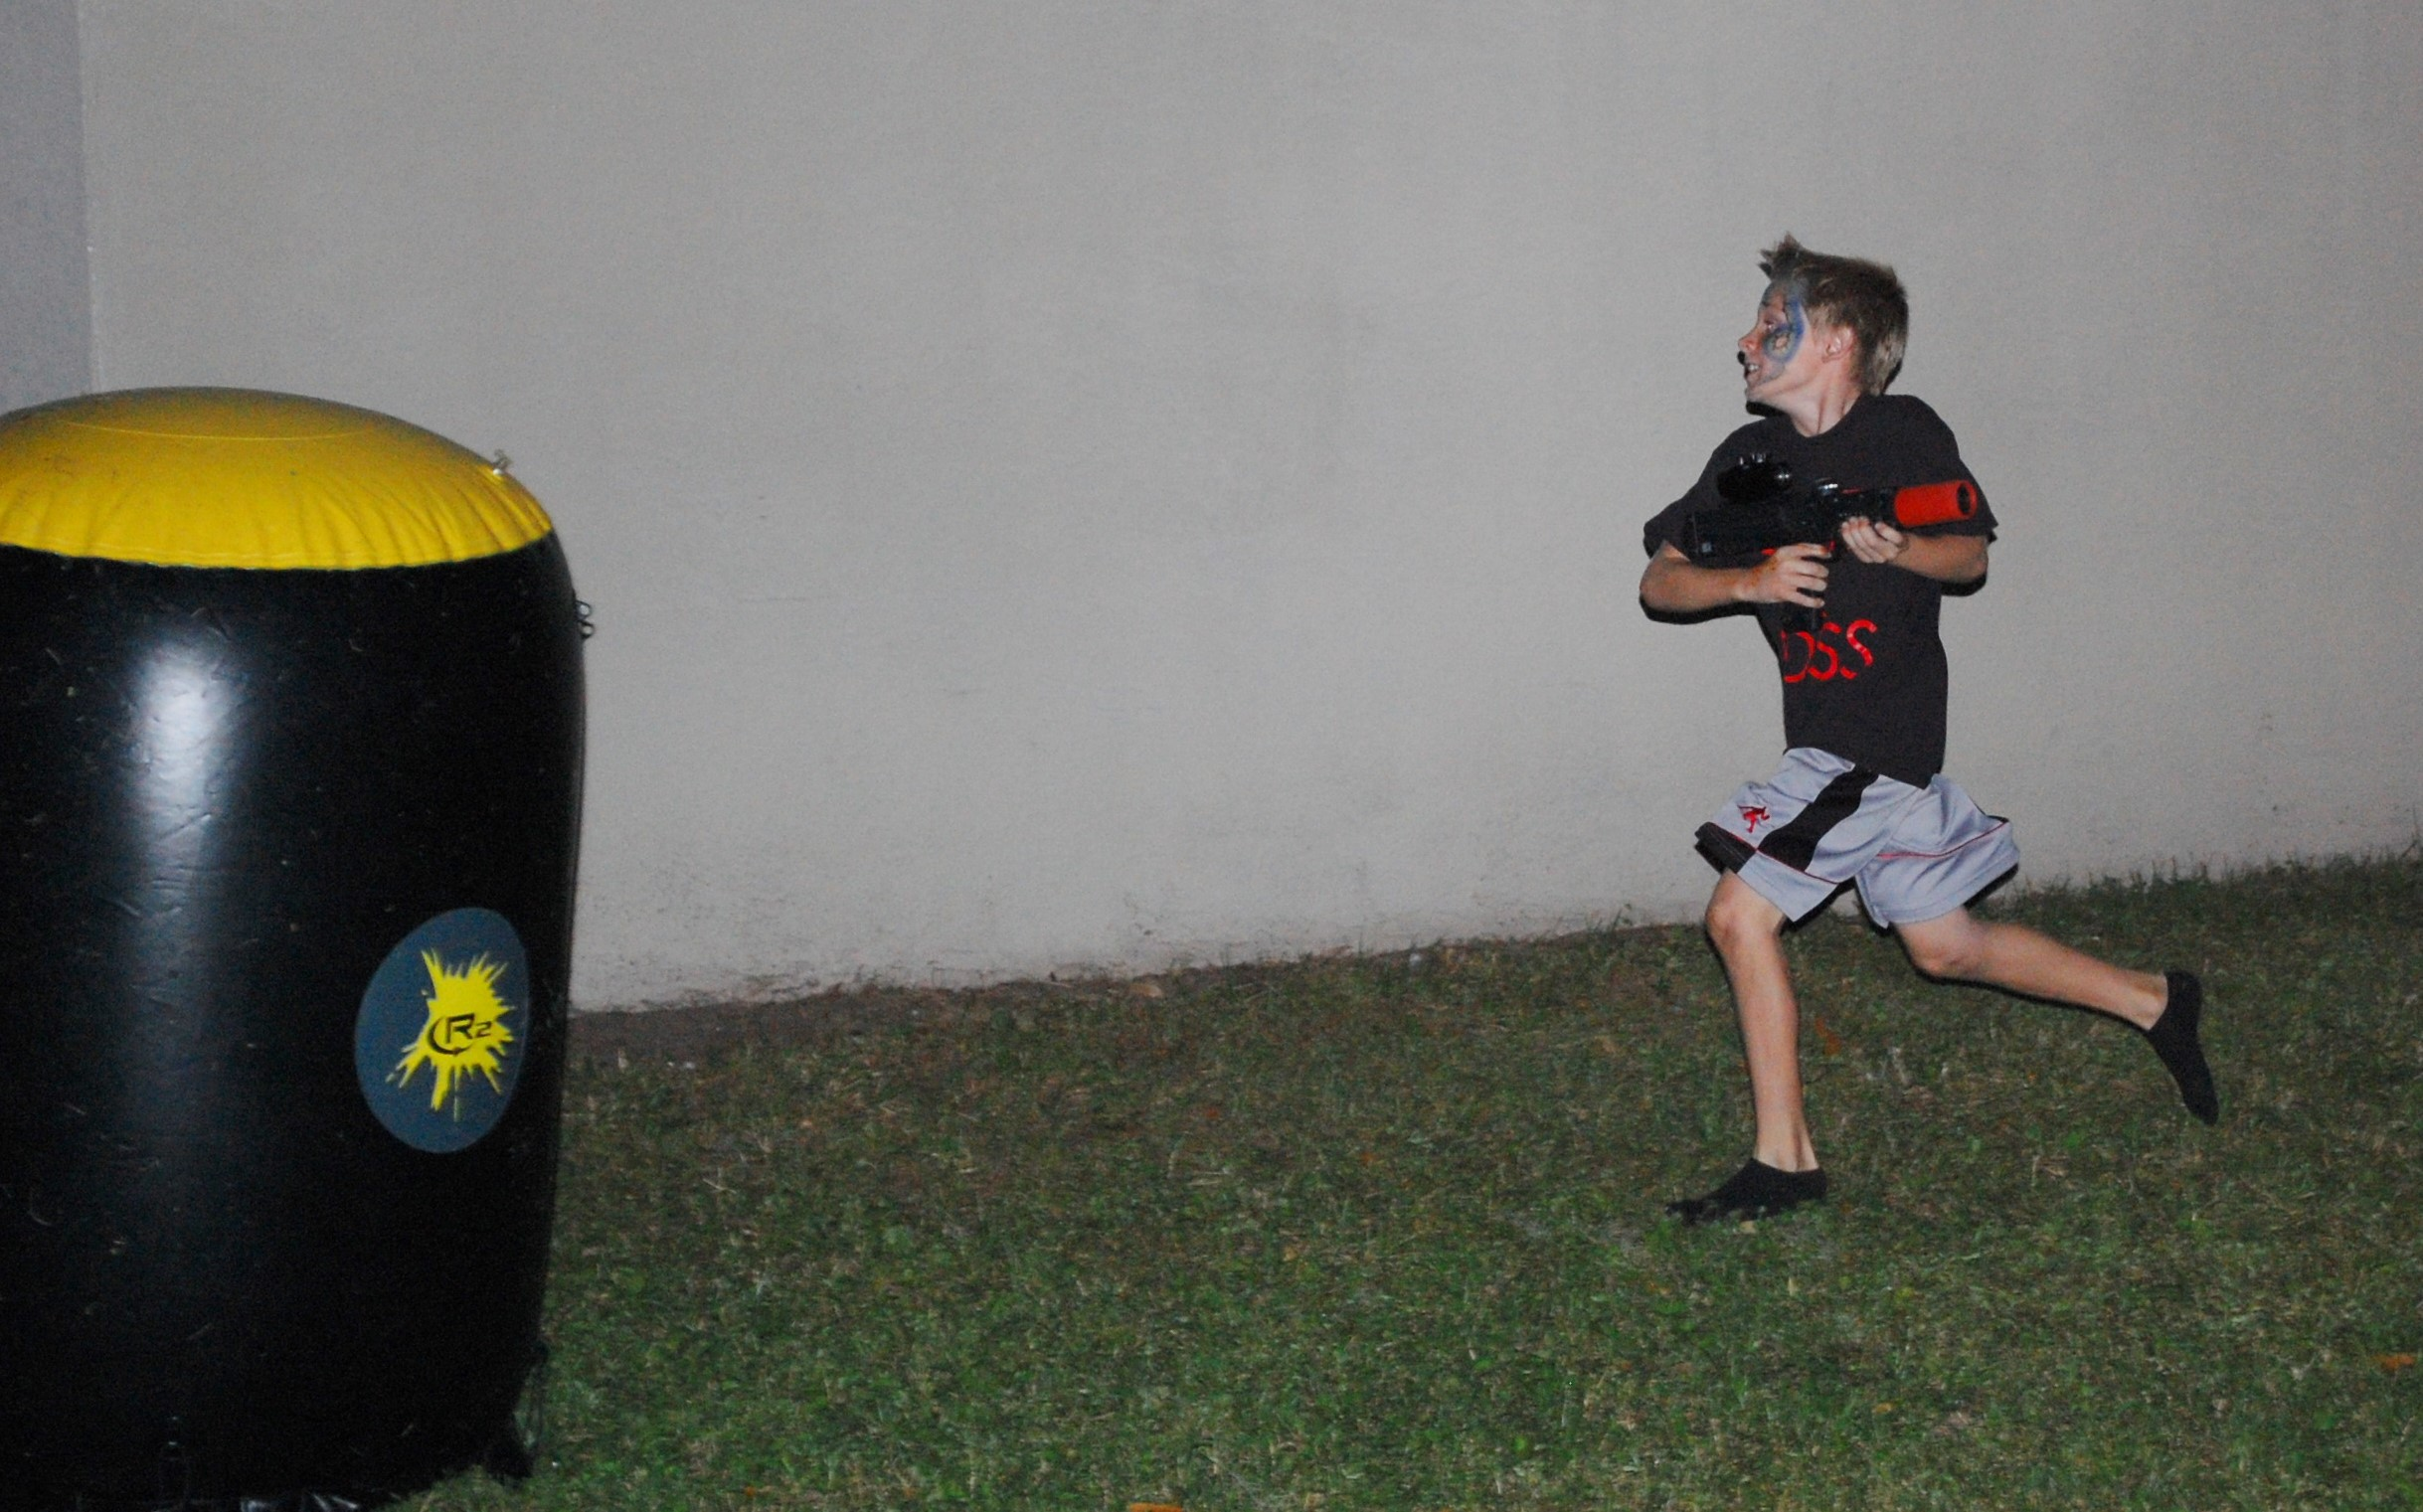 Cool Birthday Parties in Tampa,FL